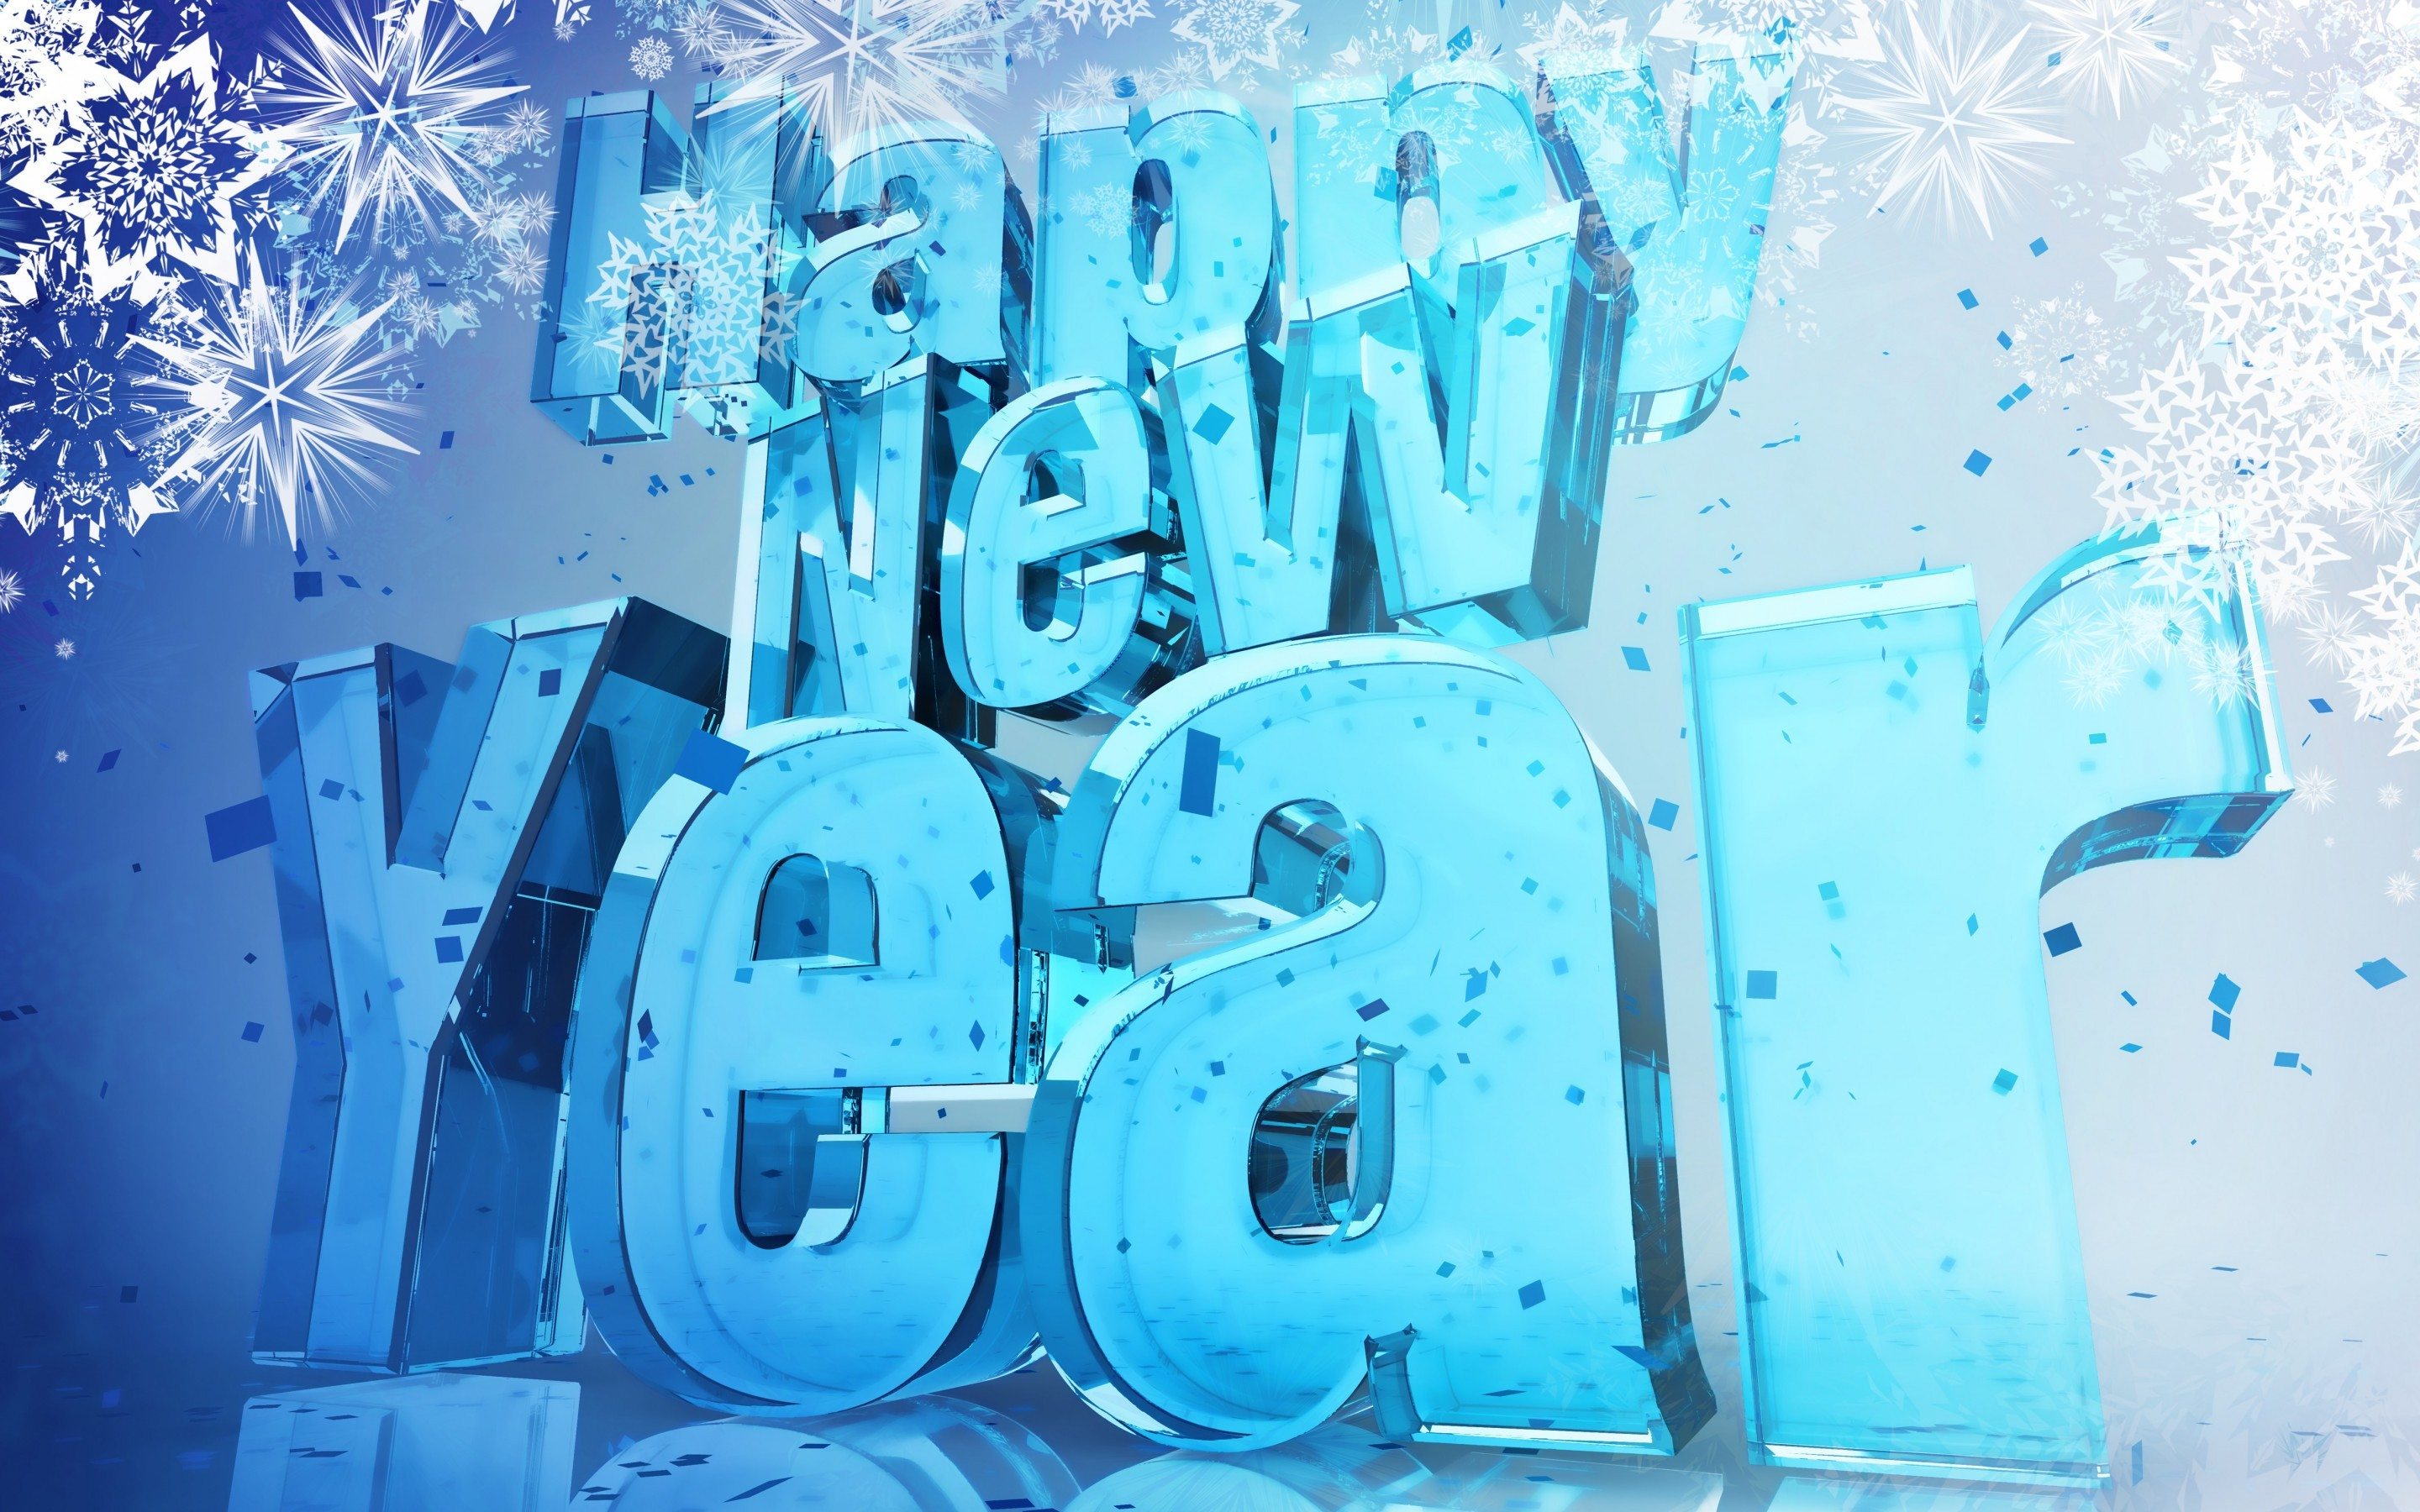 Download Best 3D Happy New Year Wallpapers Images Free